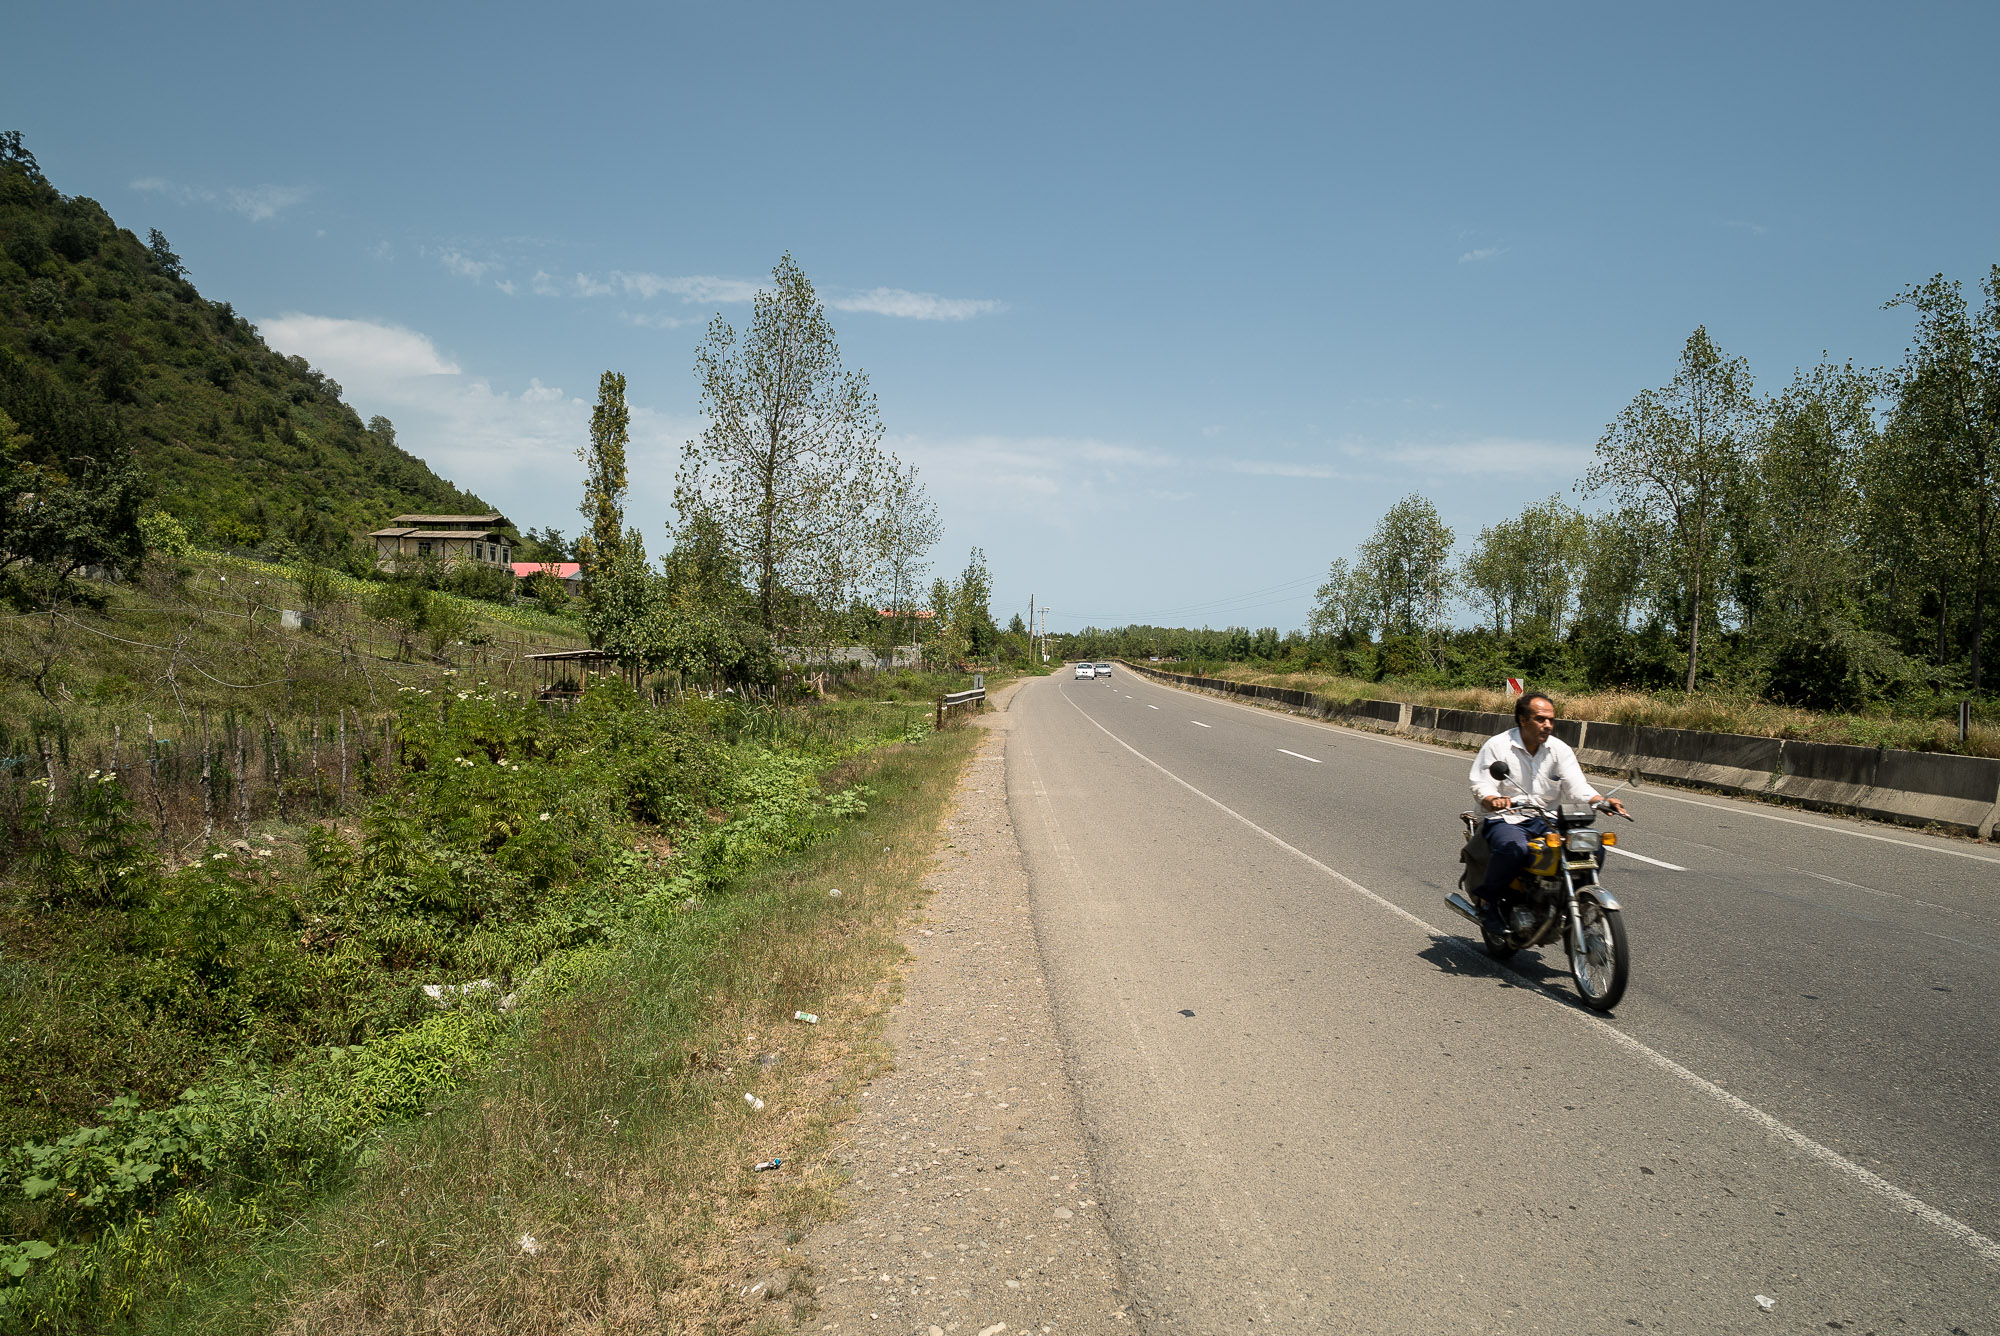 dude on motorcycle near Talesh